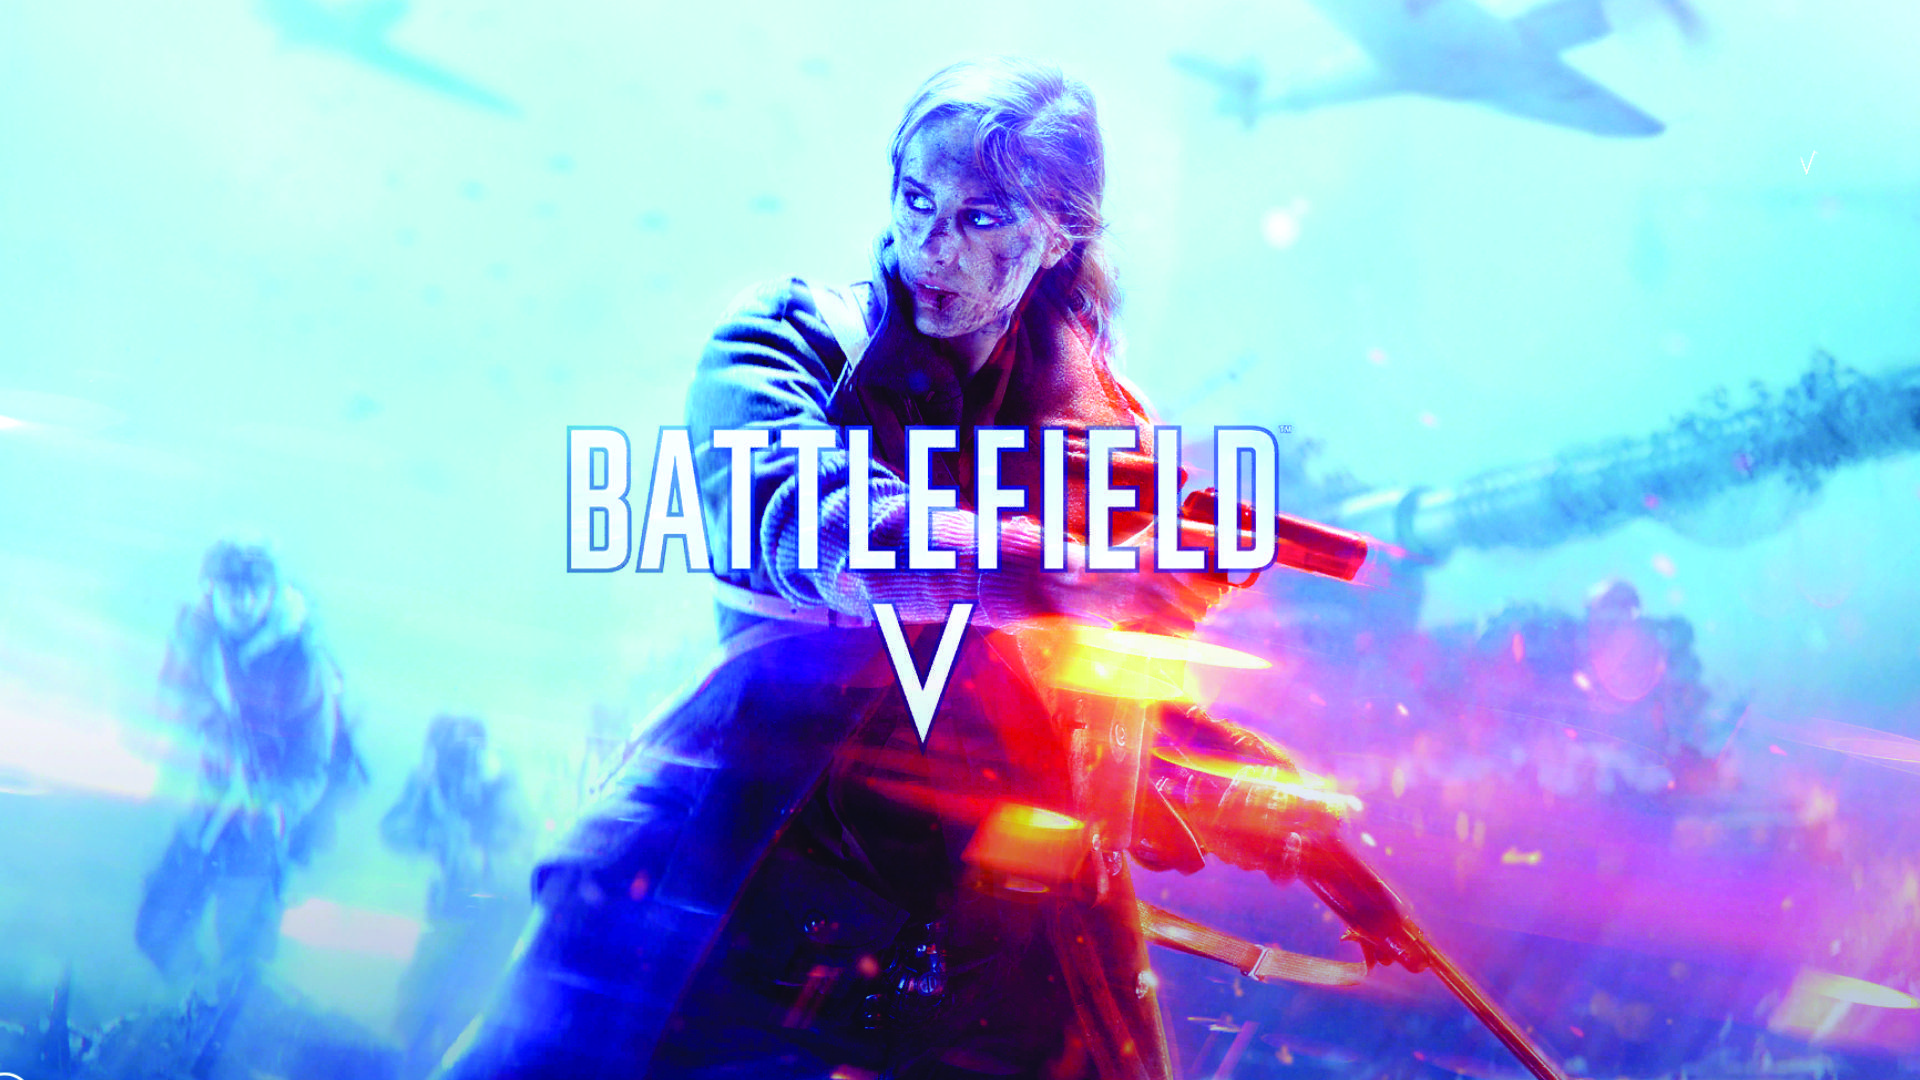 Battlefield V 1920x1080 Need Trendy Iphone7 Iphone7plus Case Check Out Http Bit Ly 2a9e5zw Ghost Games Black Ops Battlefield